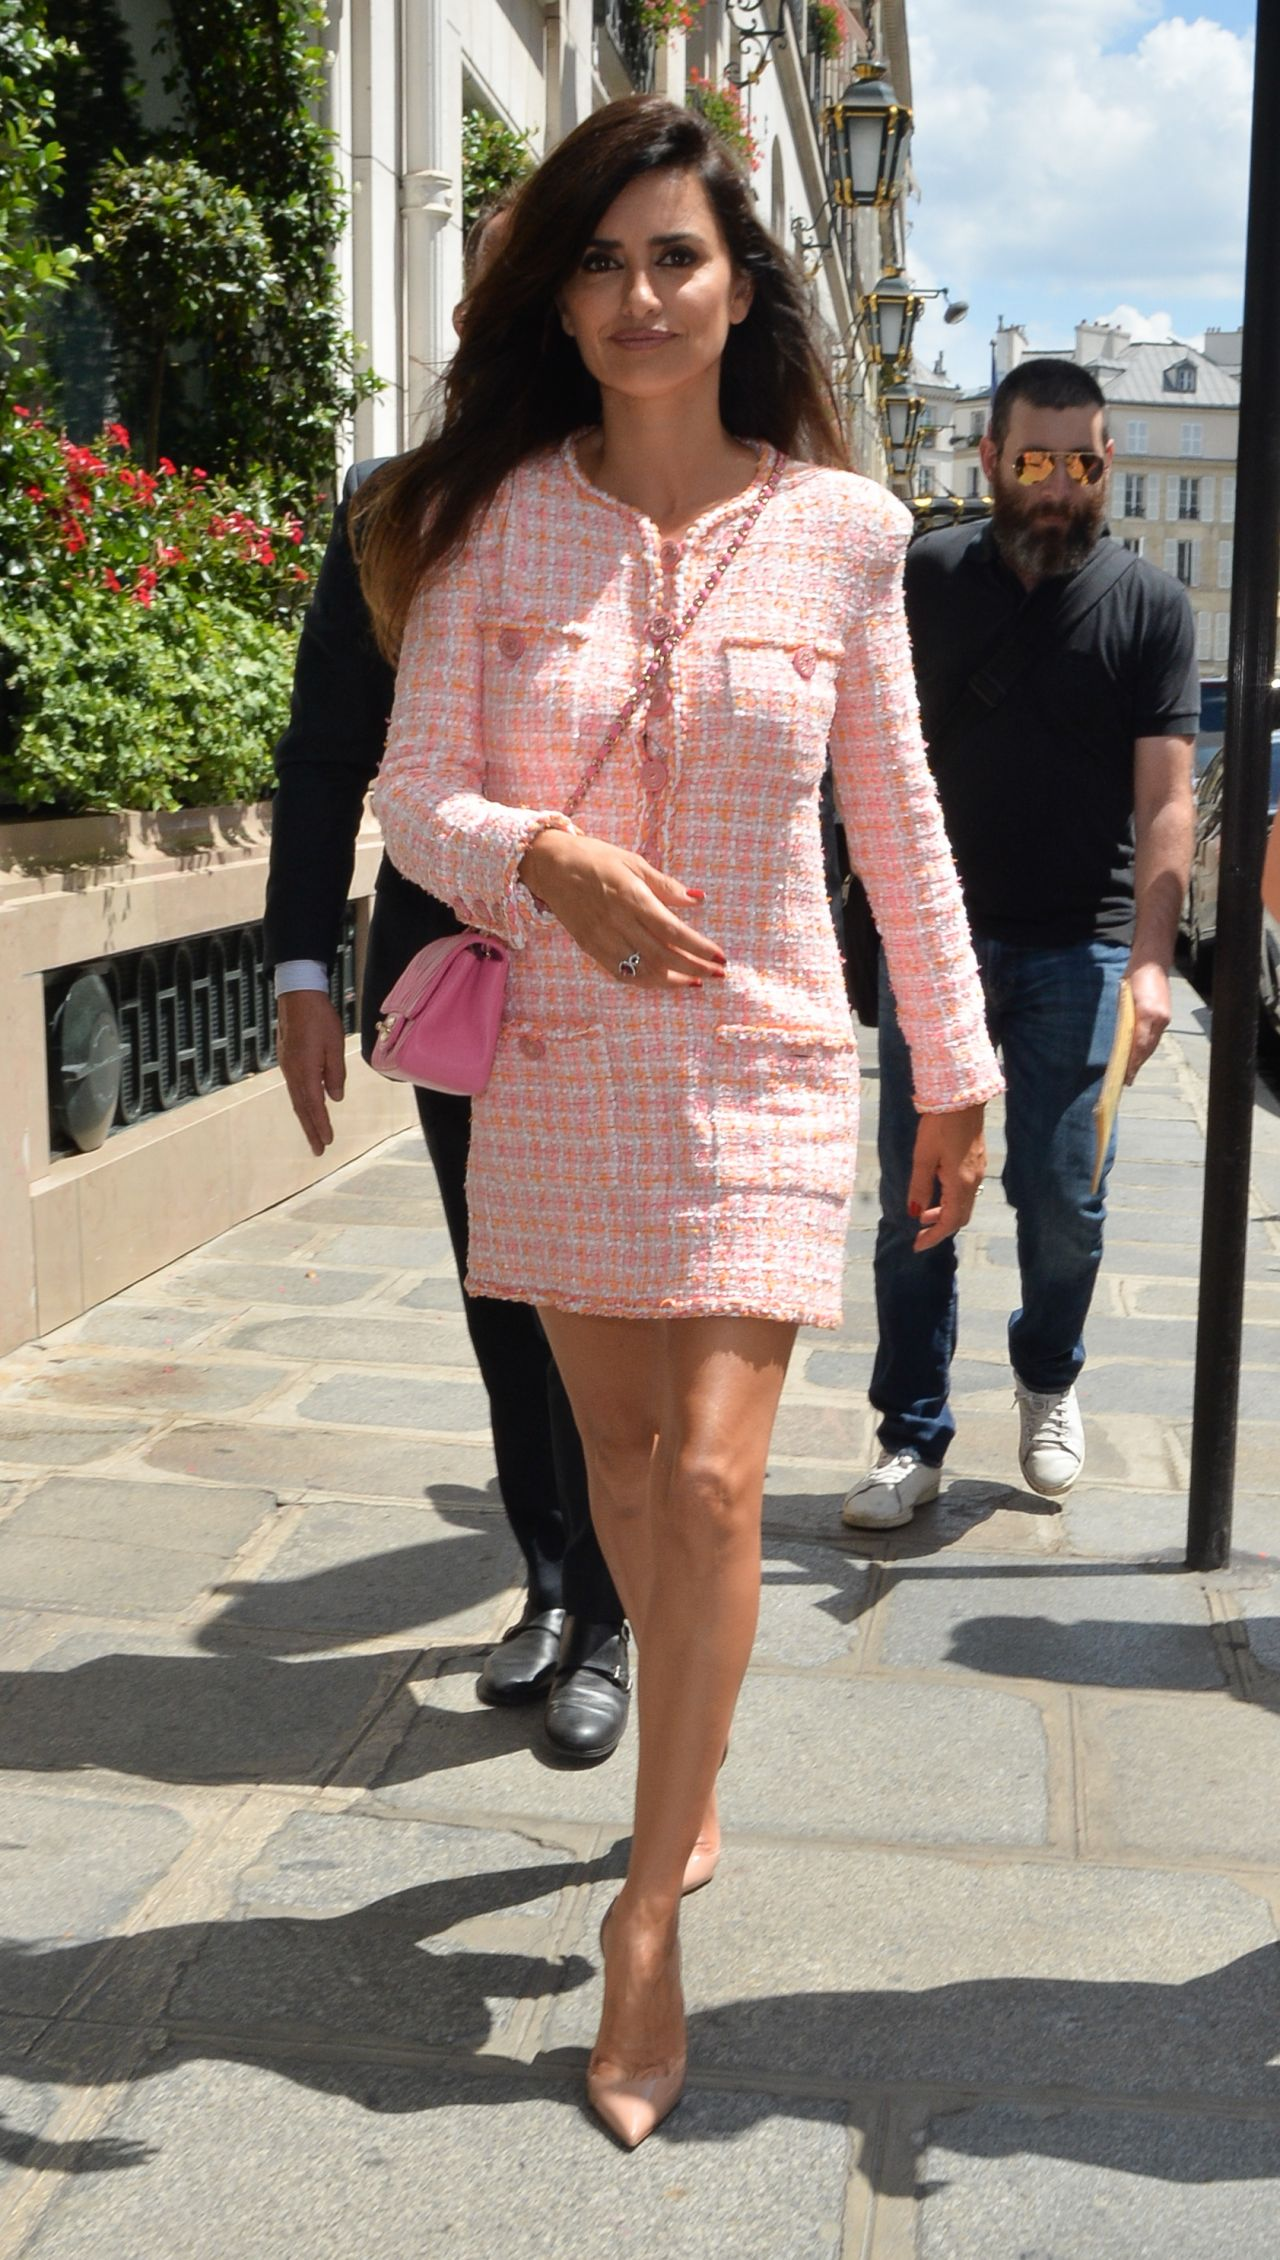 https://celebmafia.com/wp-content/uploads/2018/07/penelope-cruz-at-chanel-show-pfw-in-paris-07-03-2018-3.jpg